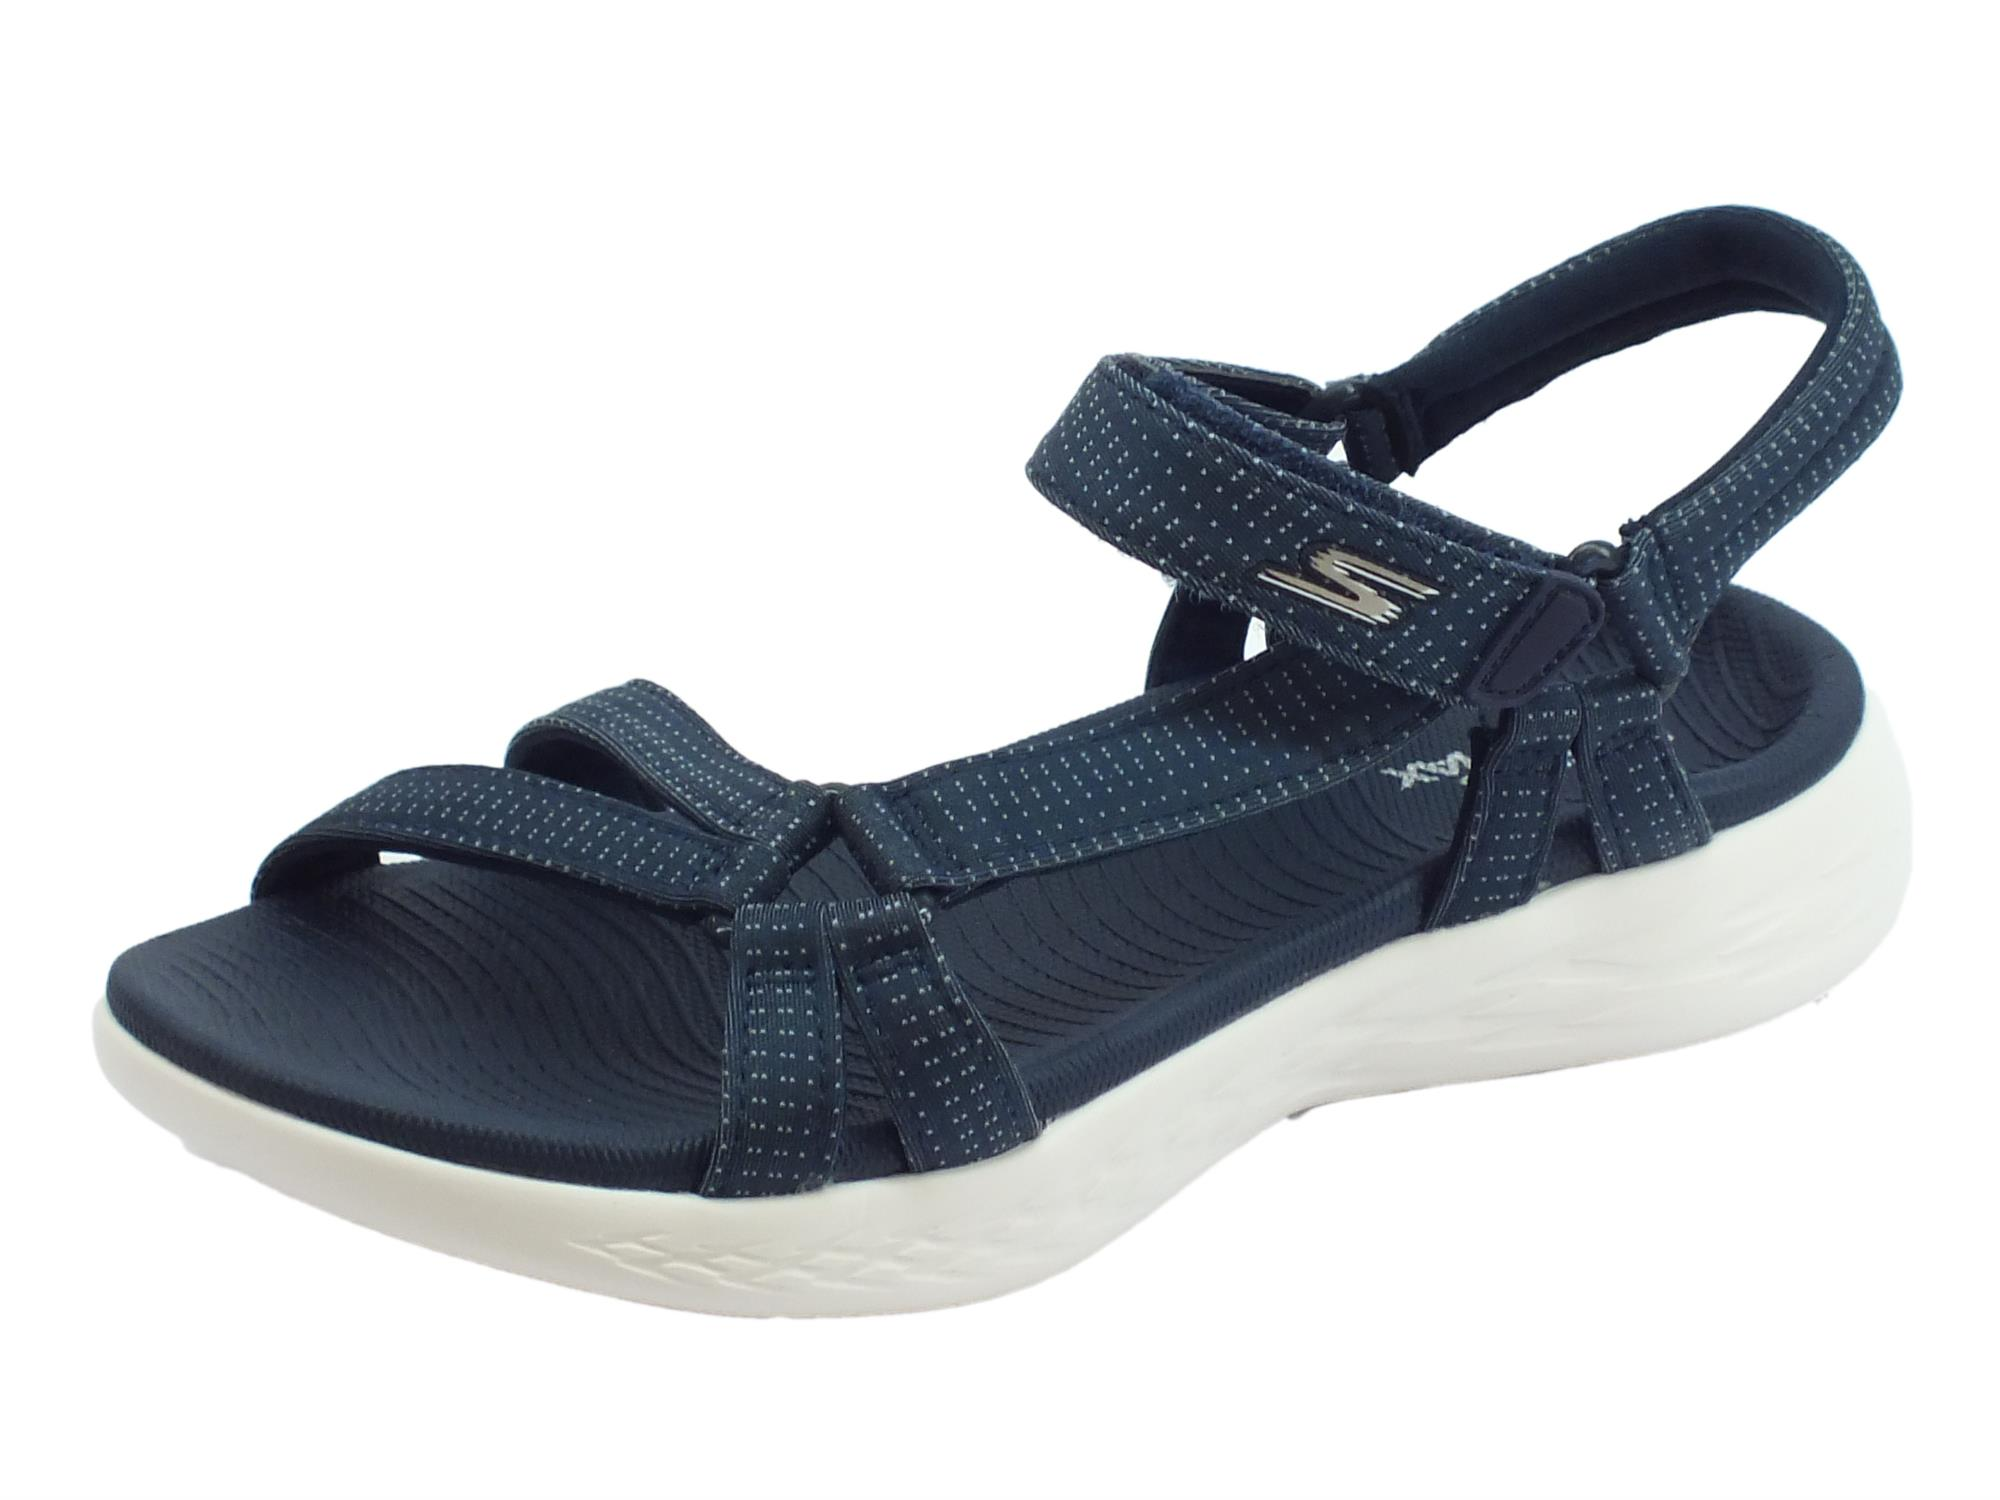 Sandali Brilliancy Skechers on the go per donna in tessuto navy zeppa bassa